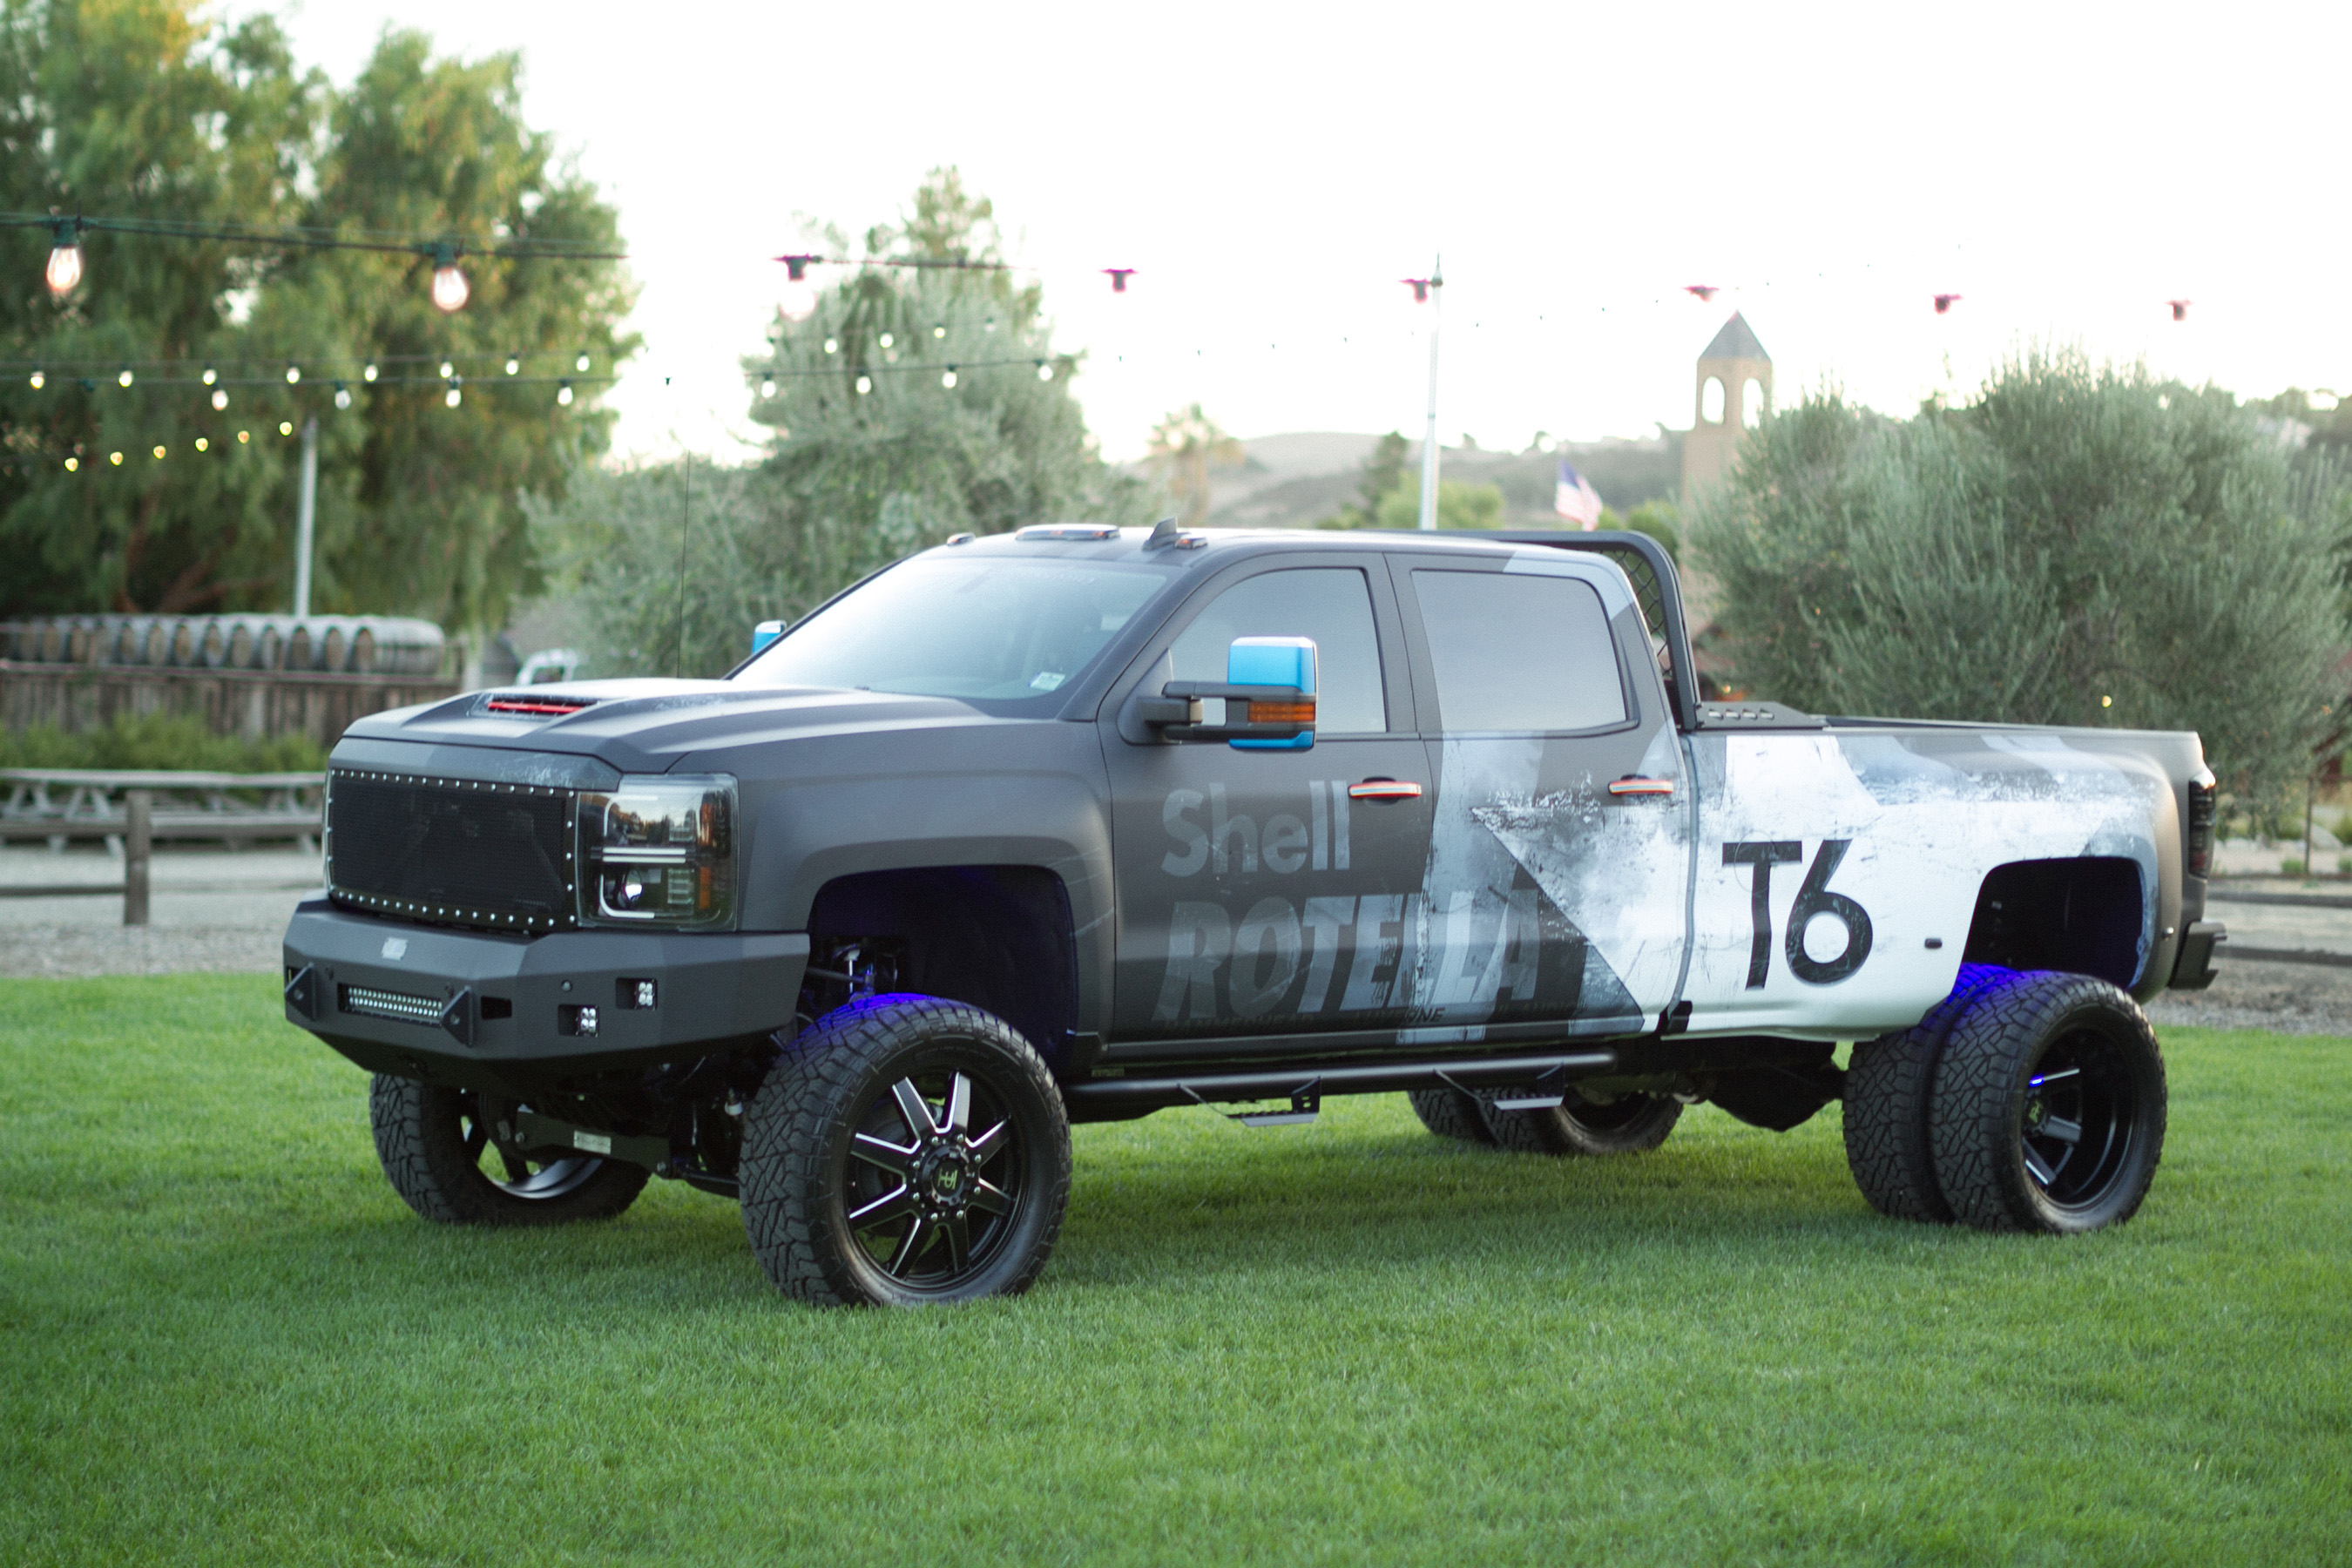 Tommy Pike Customs Shell ROTELLA T6 Modified ?Pickup Pride' Pickup Truck